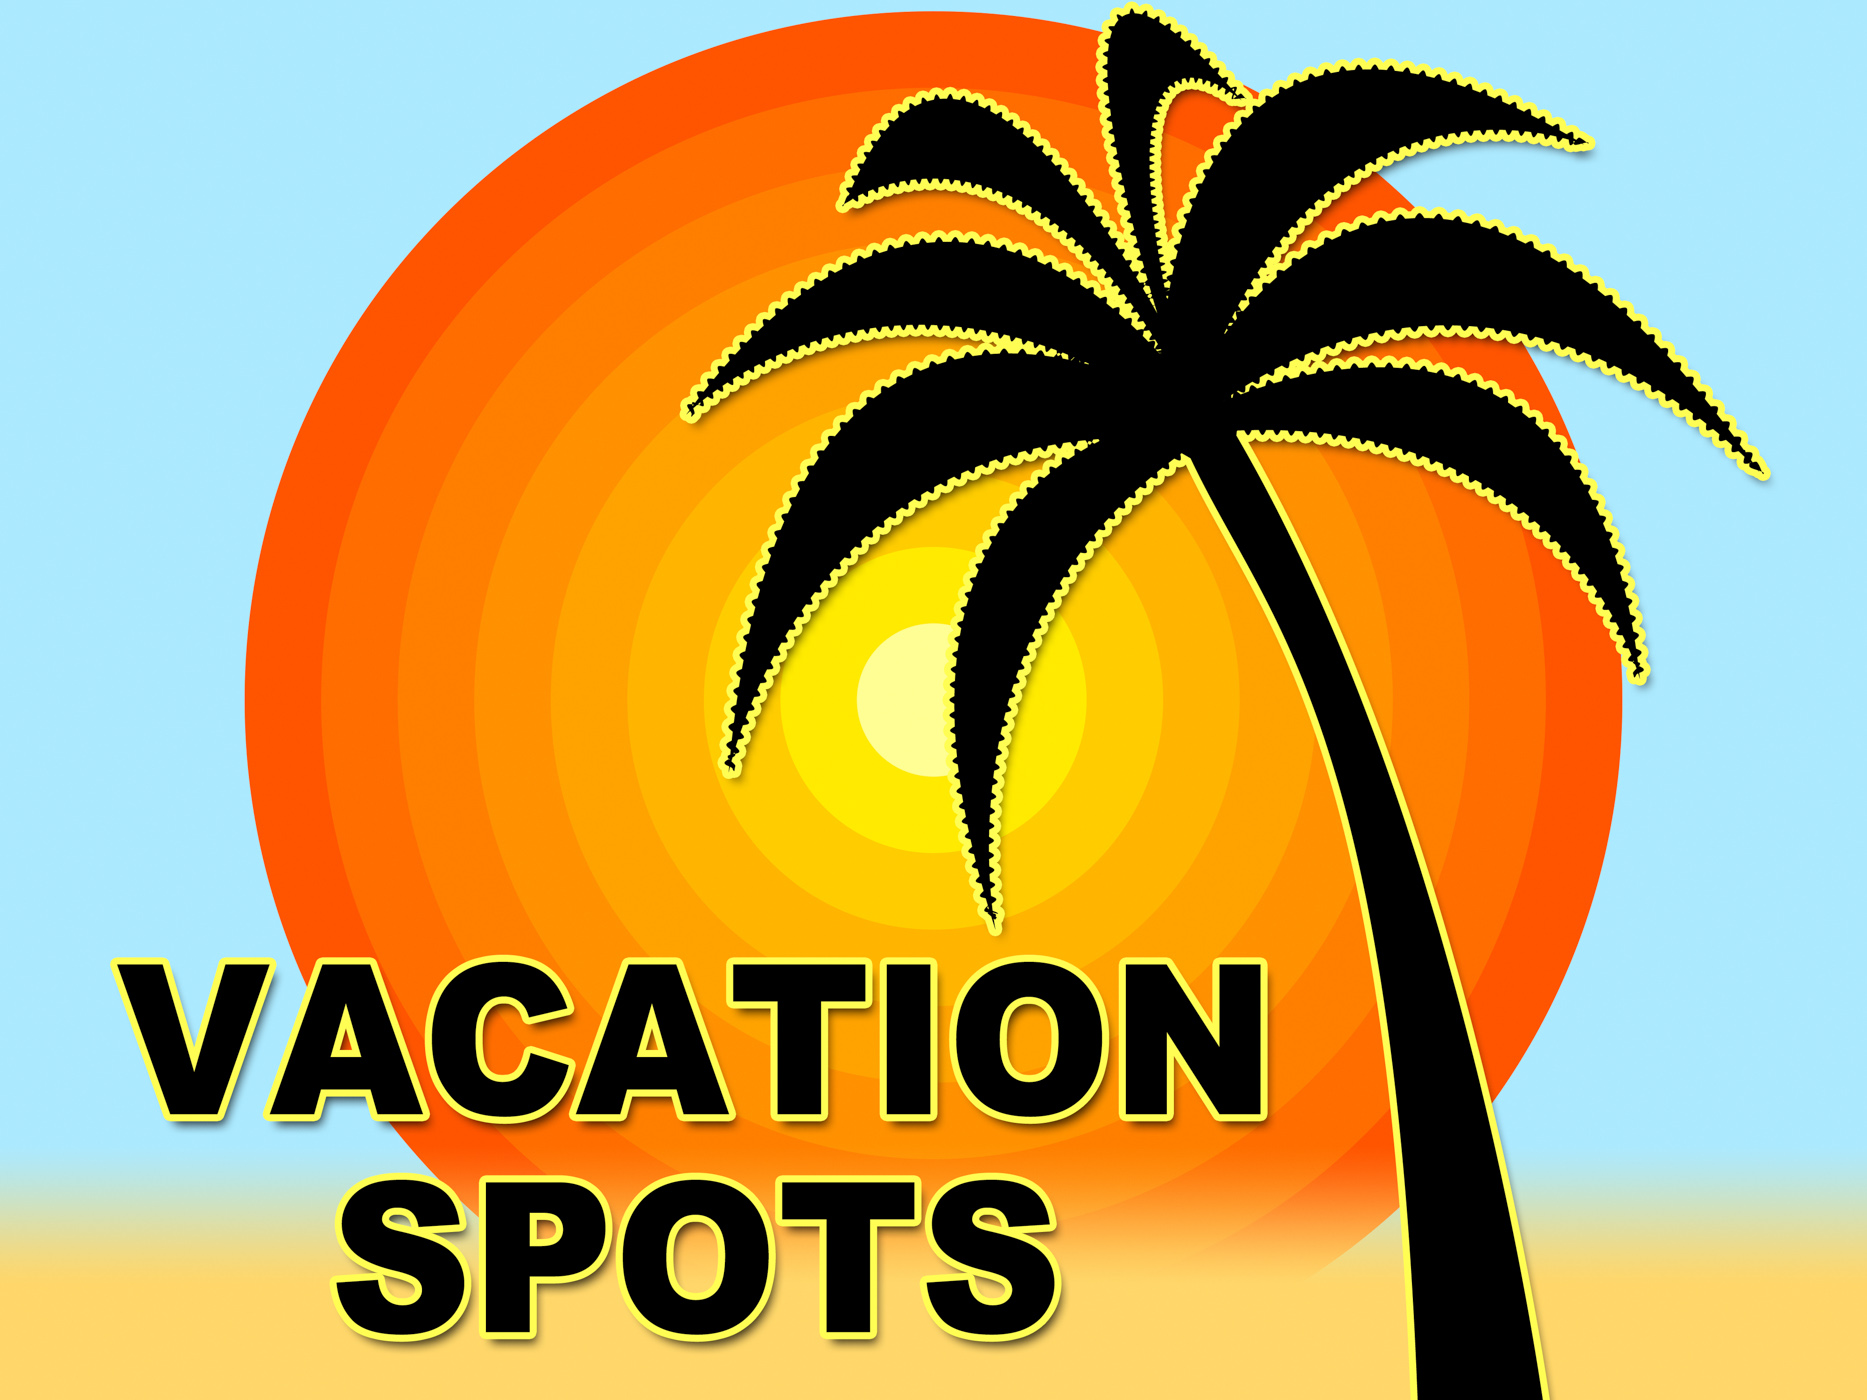 Vacation Spots Represents Place Holidays And Vacations, Break, Destination, Destinations, Getaway, HQ Photo